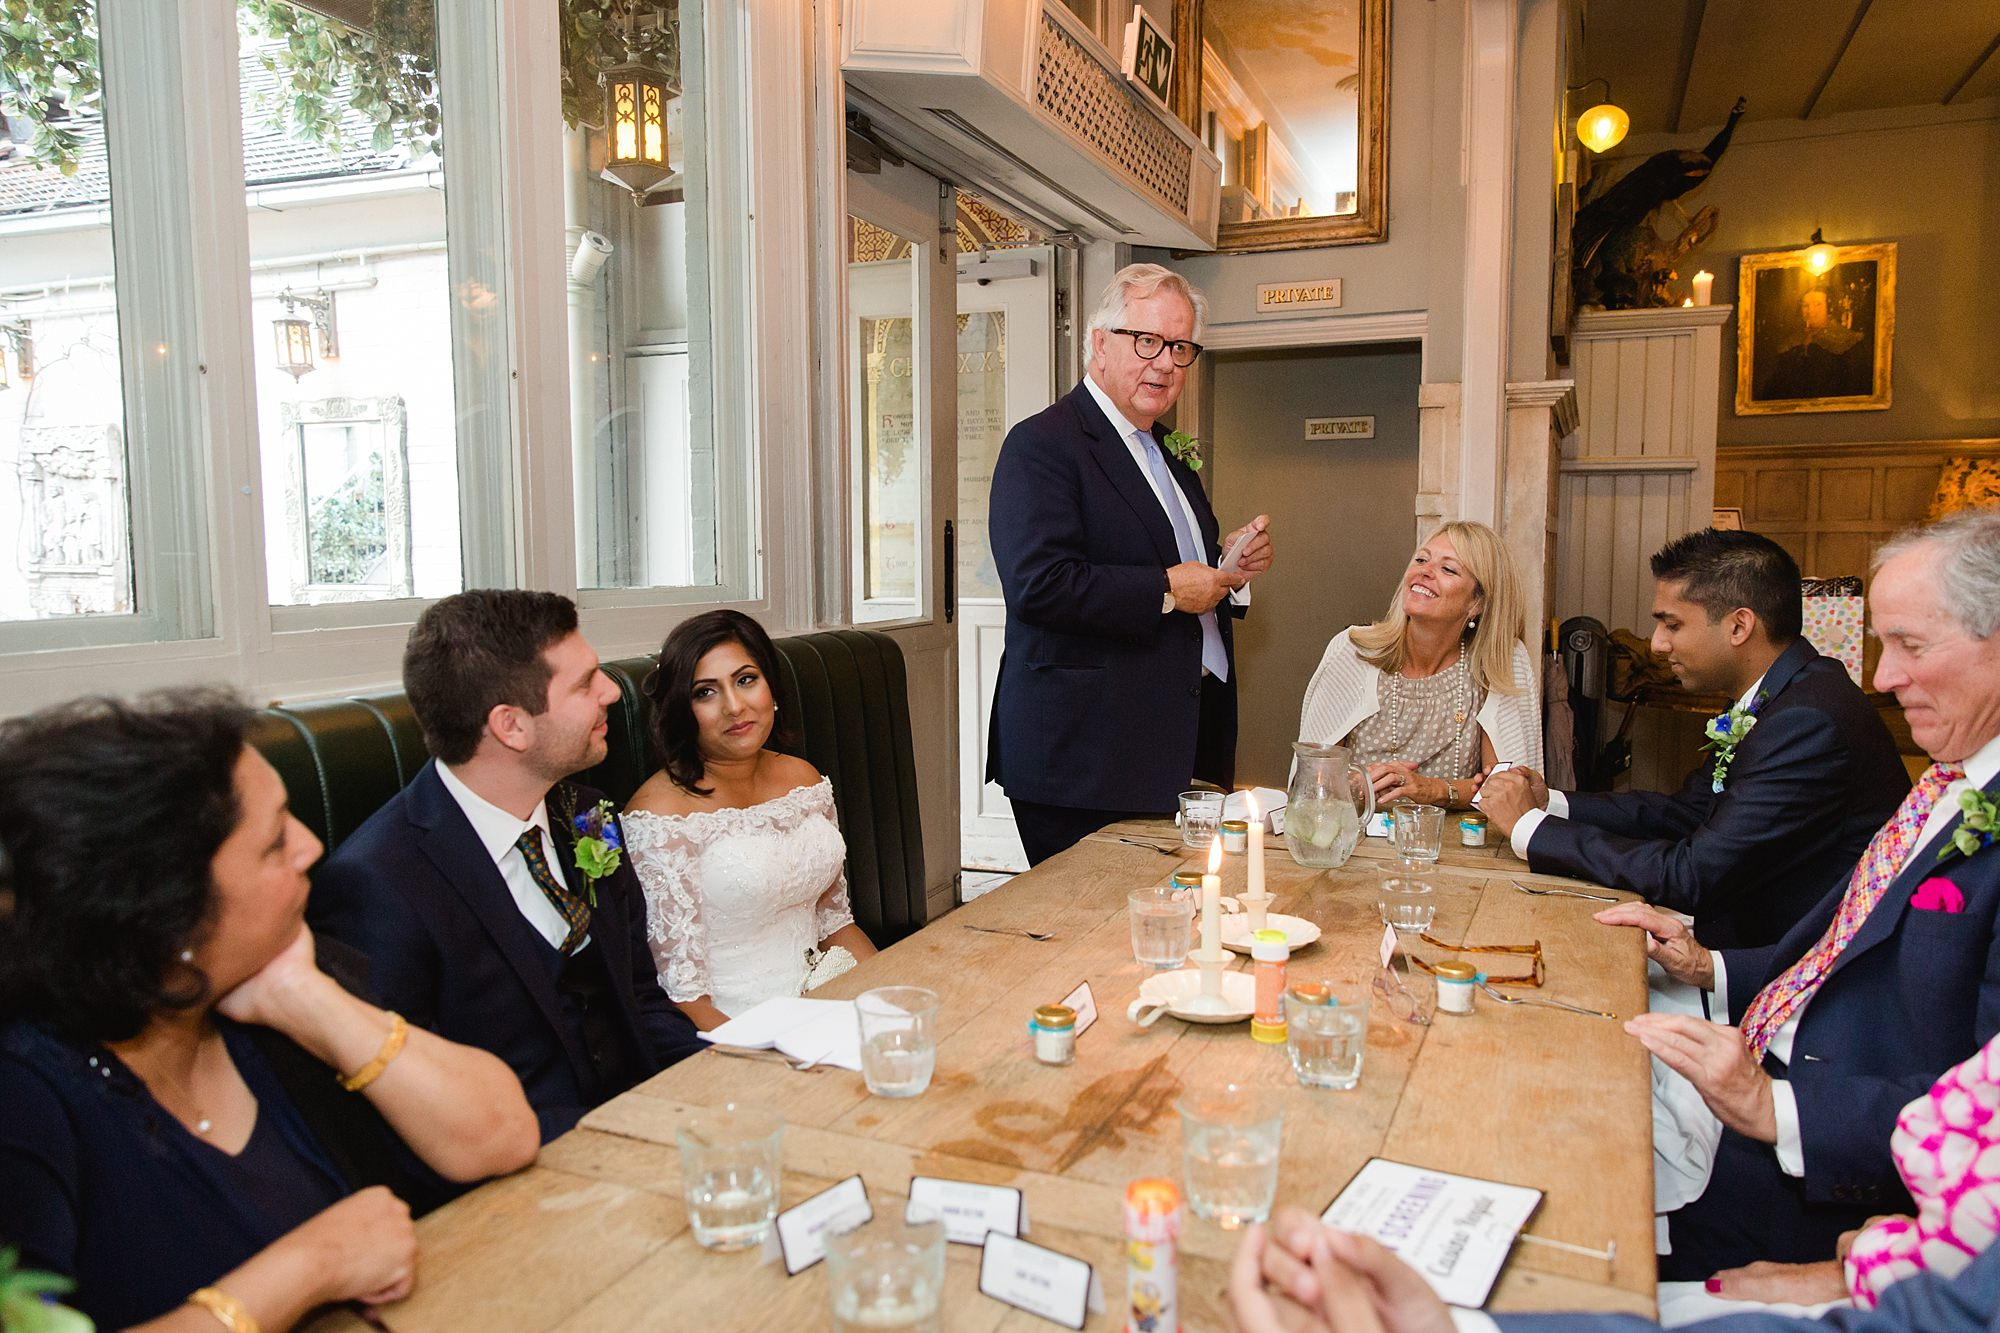 Paradise by way of Kensal Green wedding father of groom giving speech